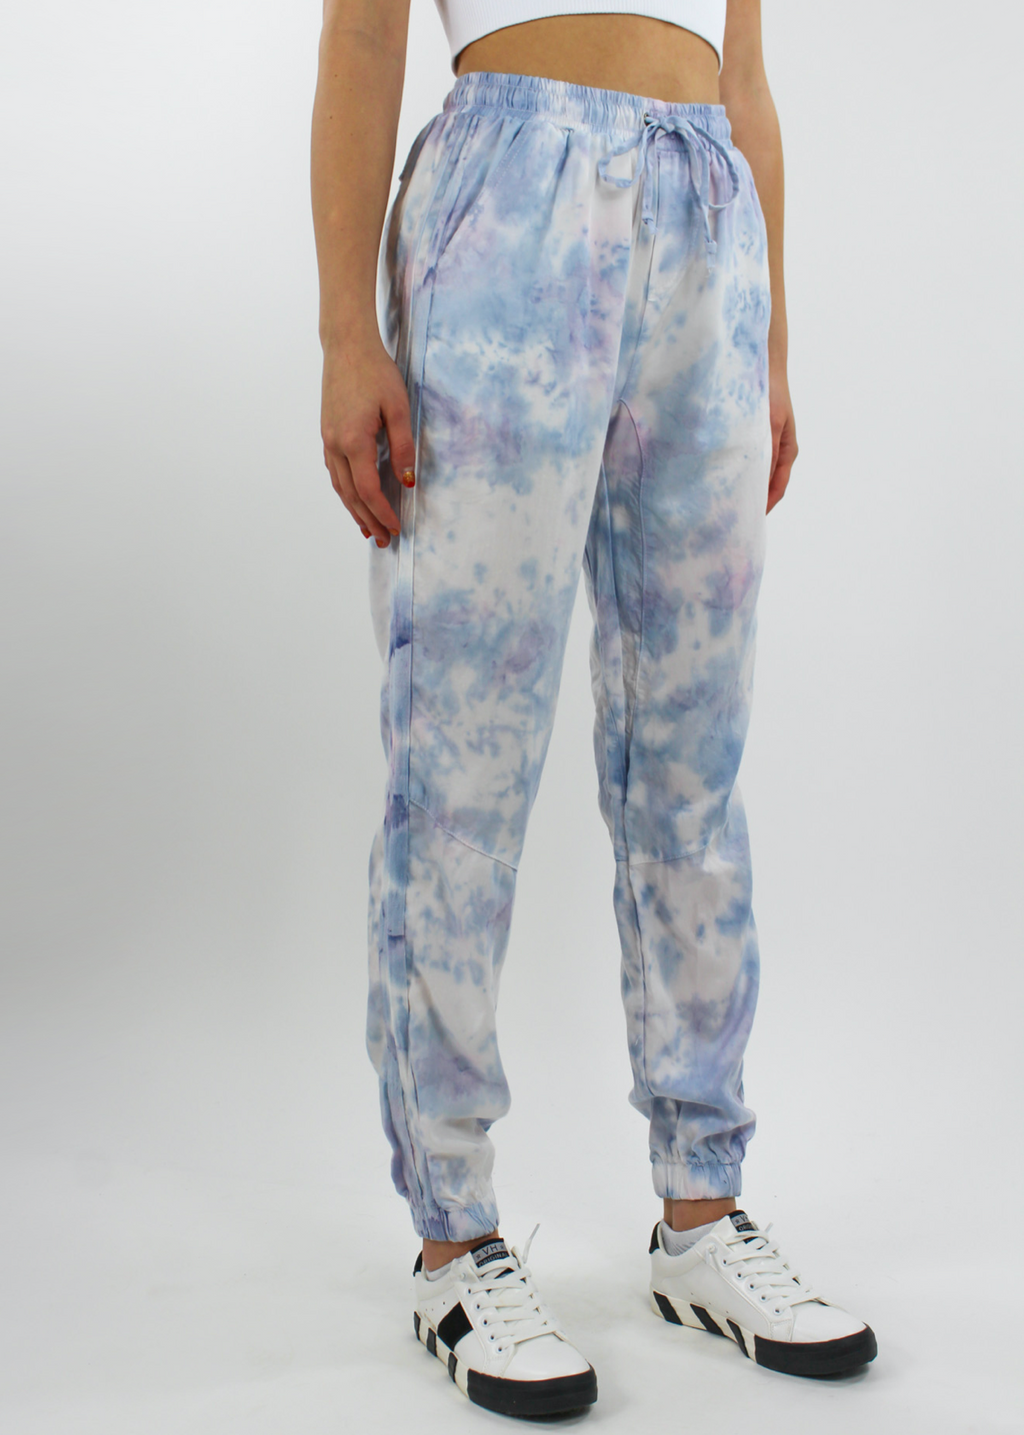 Shadows Of Love Jogger ★ Tie Dye - Rock N Rags